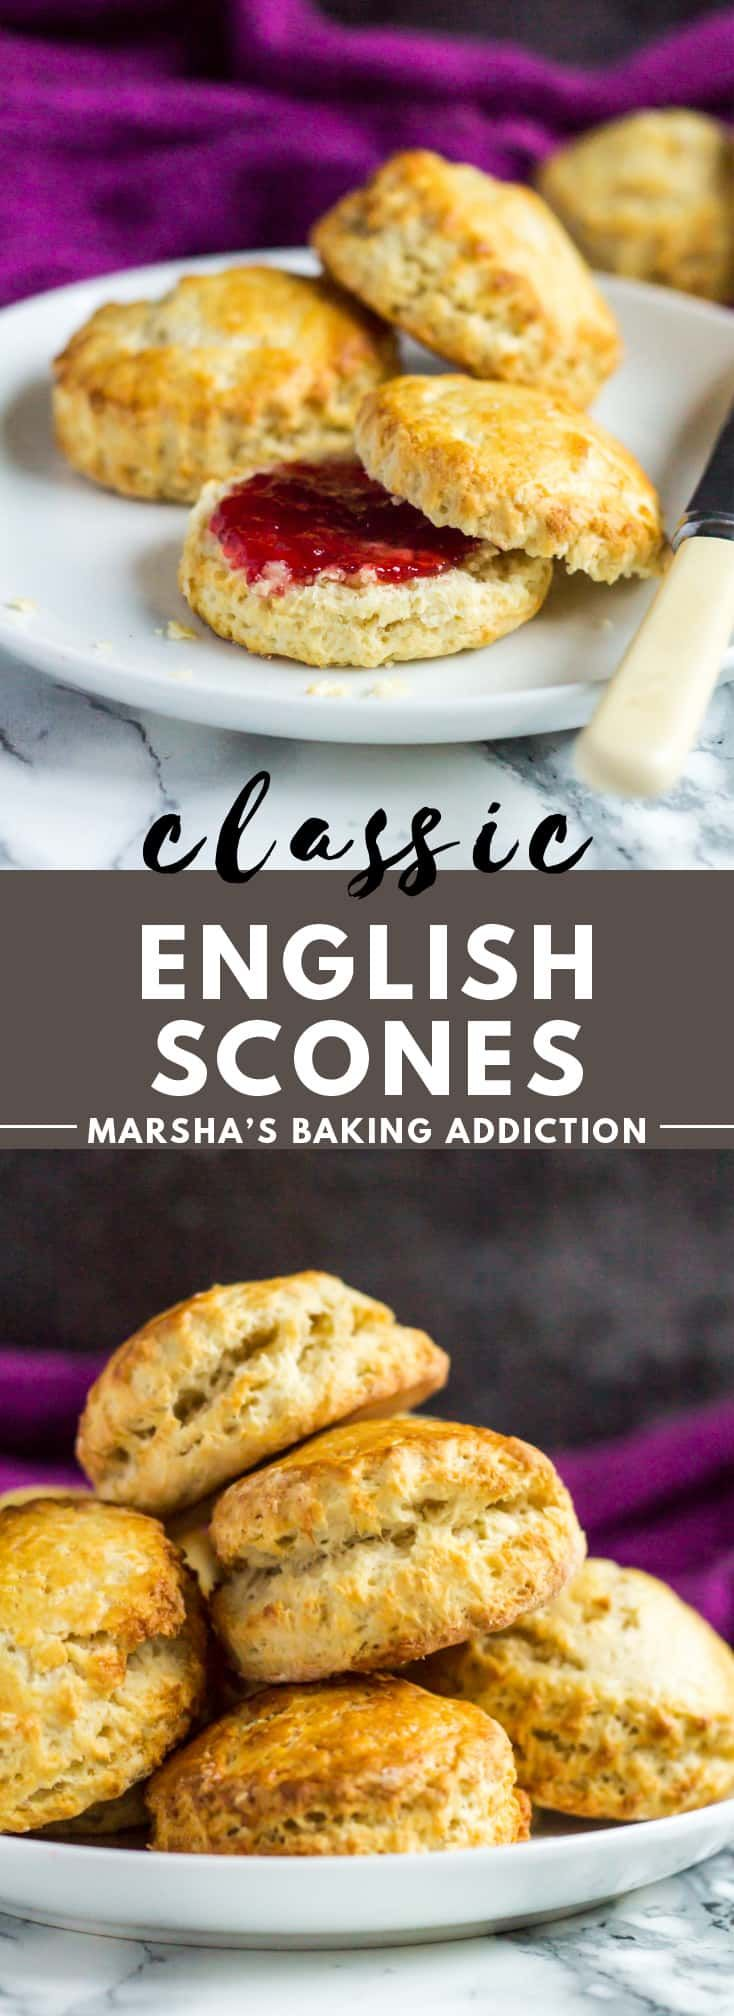 A long Pinterest image for Classic English Scones with text overlay.